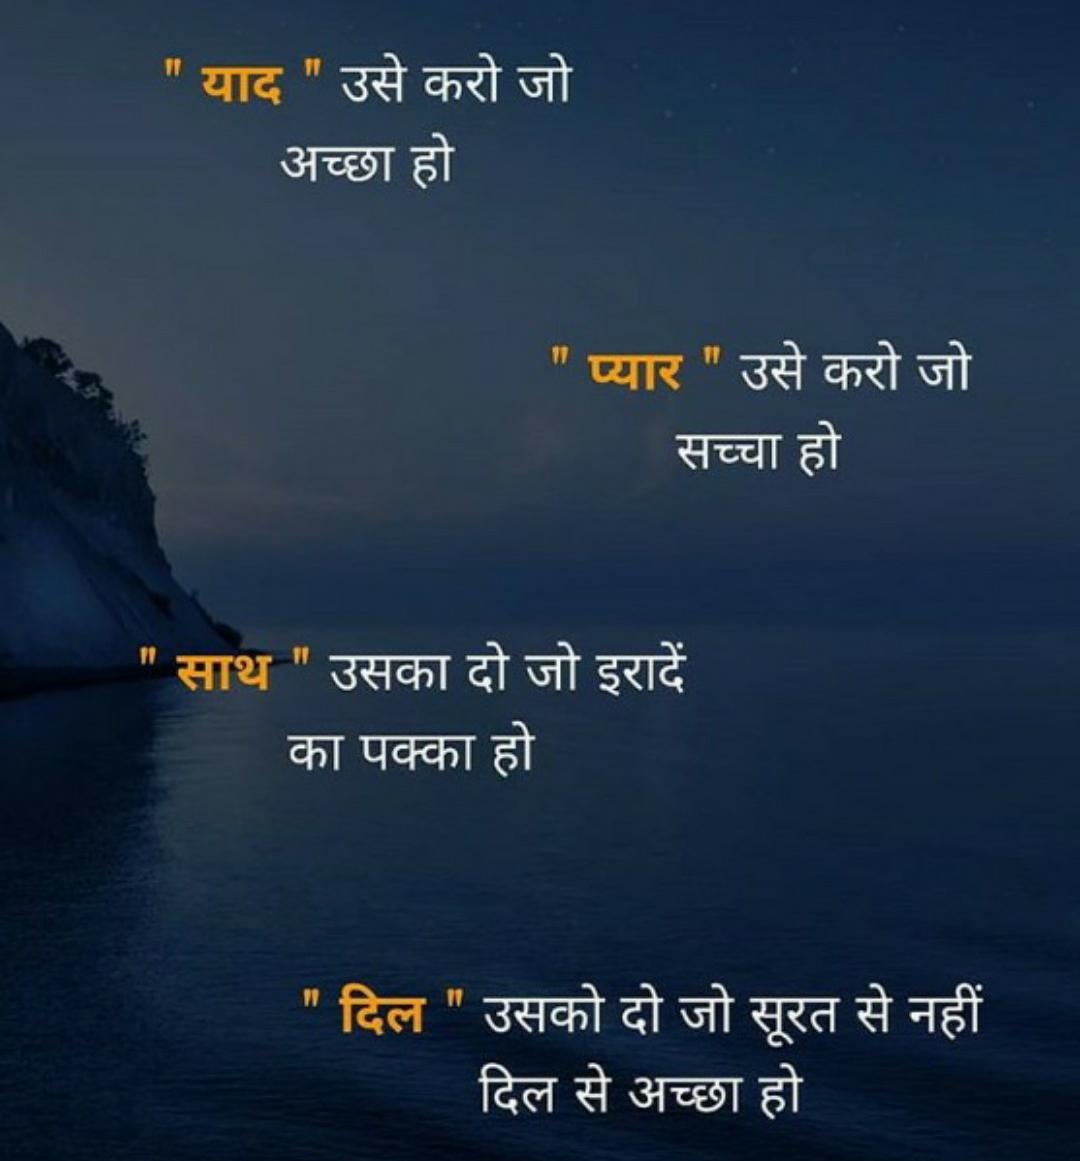 inspirational-life-quotes-in-hindi-28.jpg